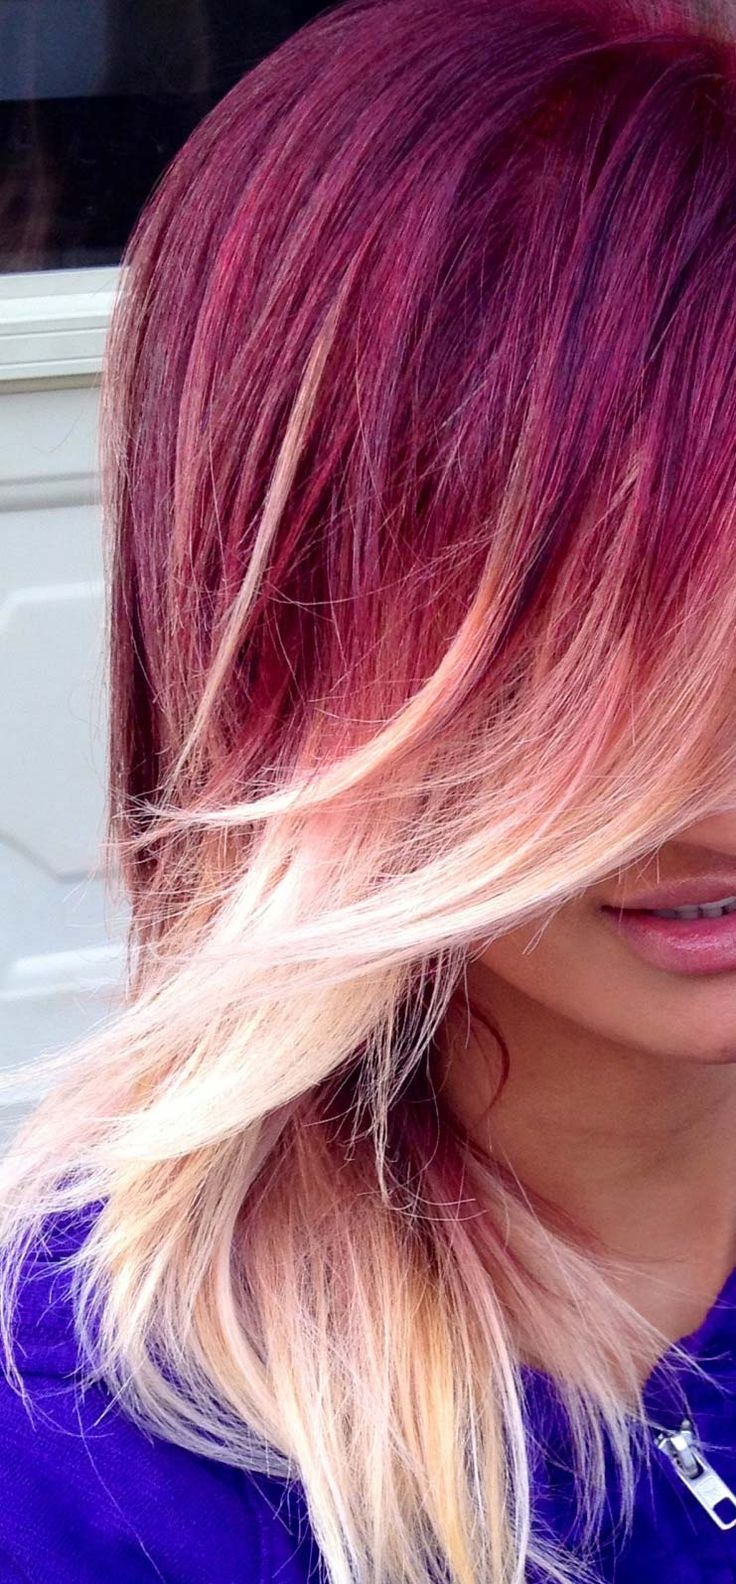 Red and Blonde Ombre Hair - Hair Colors Ideas